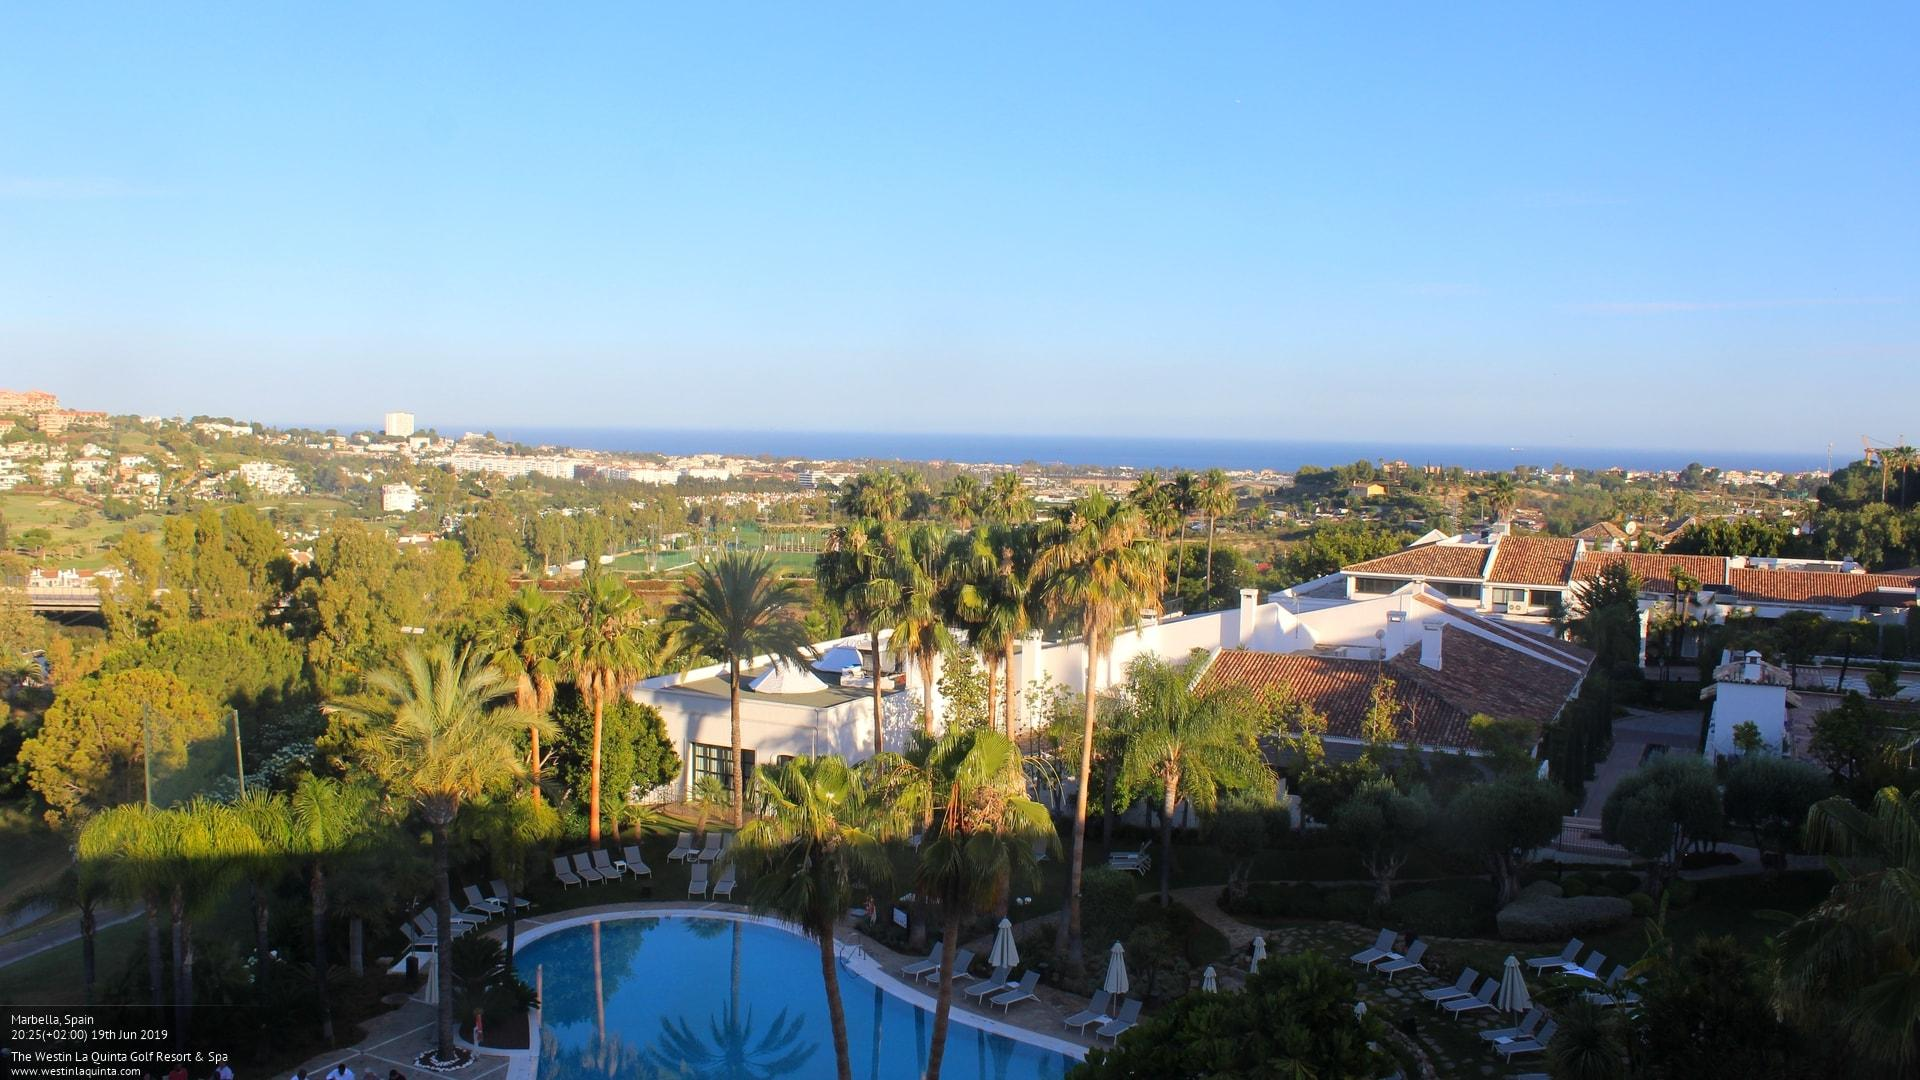 Webcam Marbella: The Westin La Quinta Golf Resort & Spa